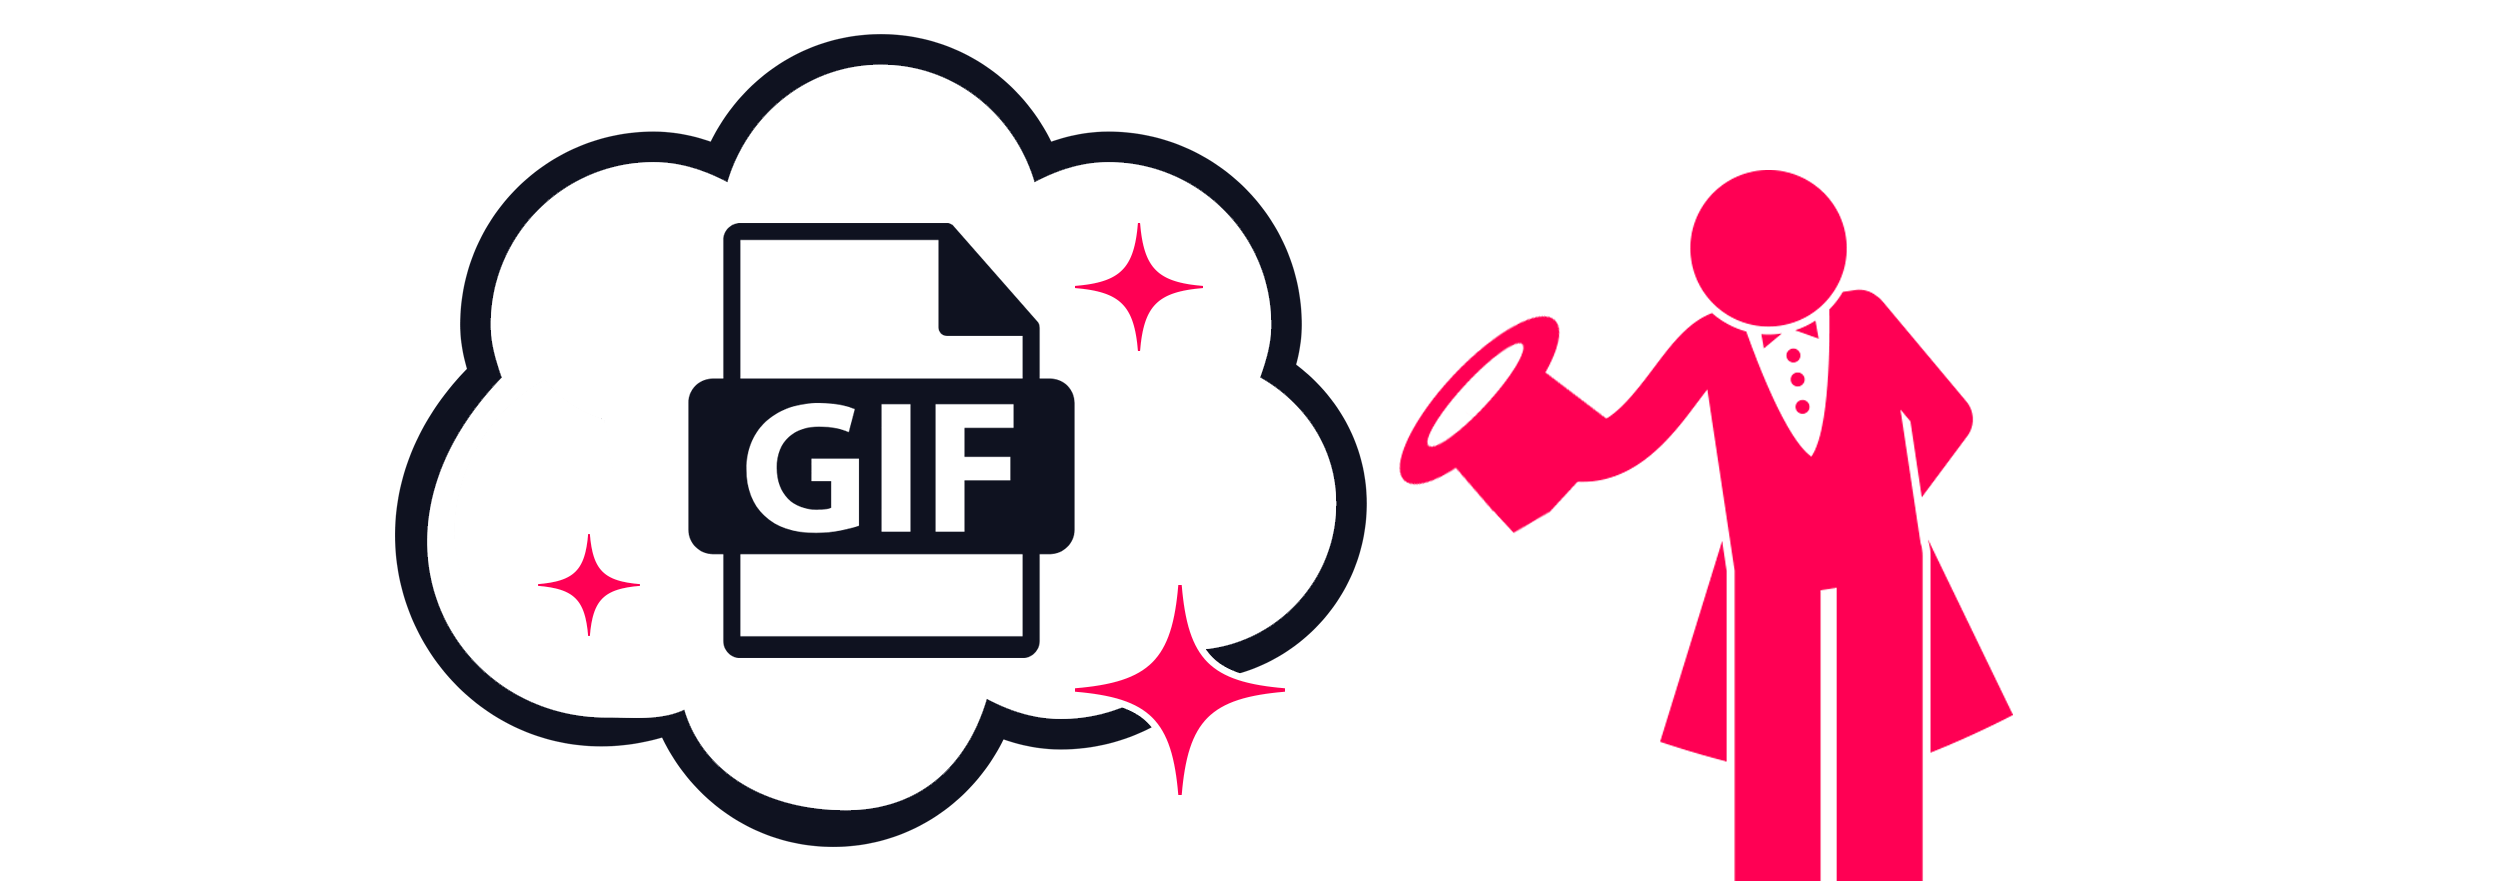 5 Ways To Make An Animated GIF (Without Photoshop!).